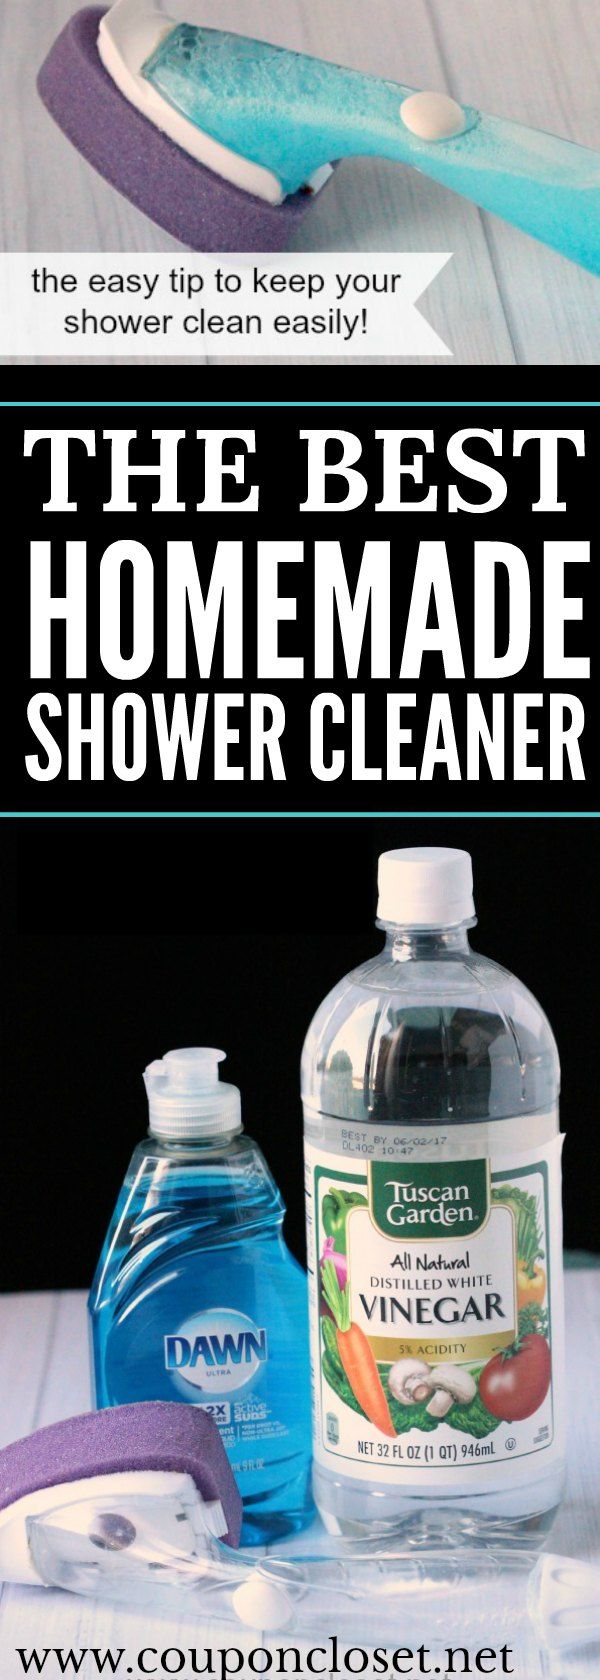 Check out the best homemade shower cleaner. Only 2 ingredients and it's much easier than you might think. No harmful fumes and it cleans so good.